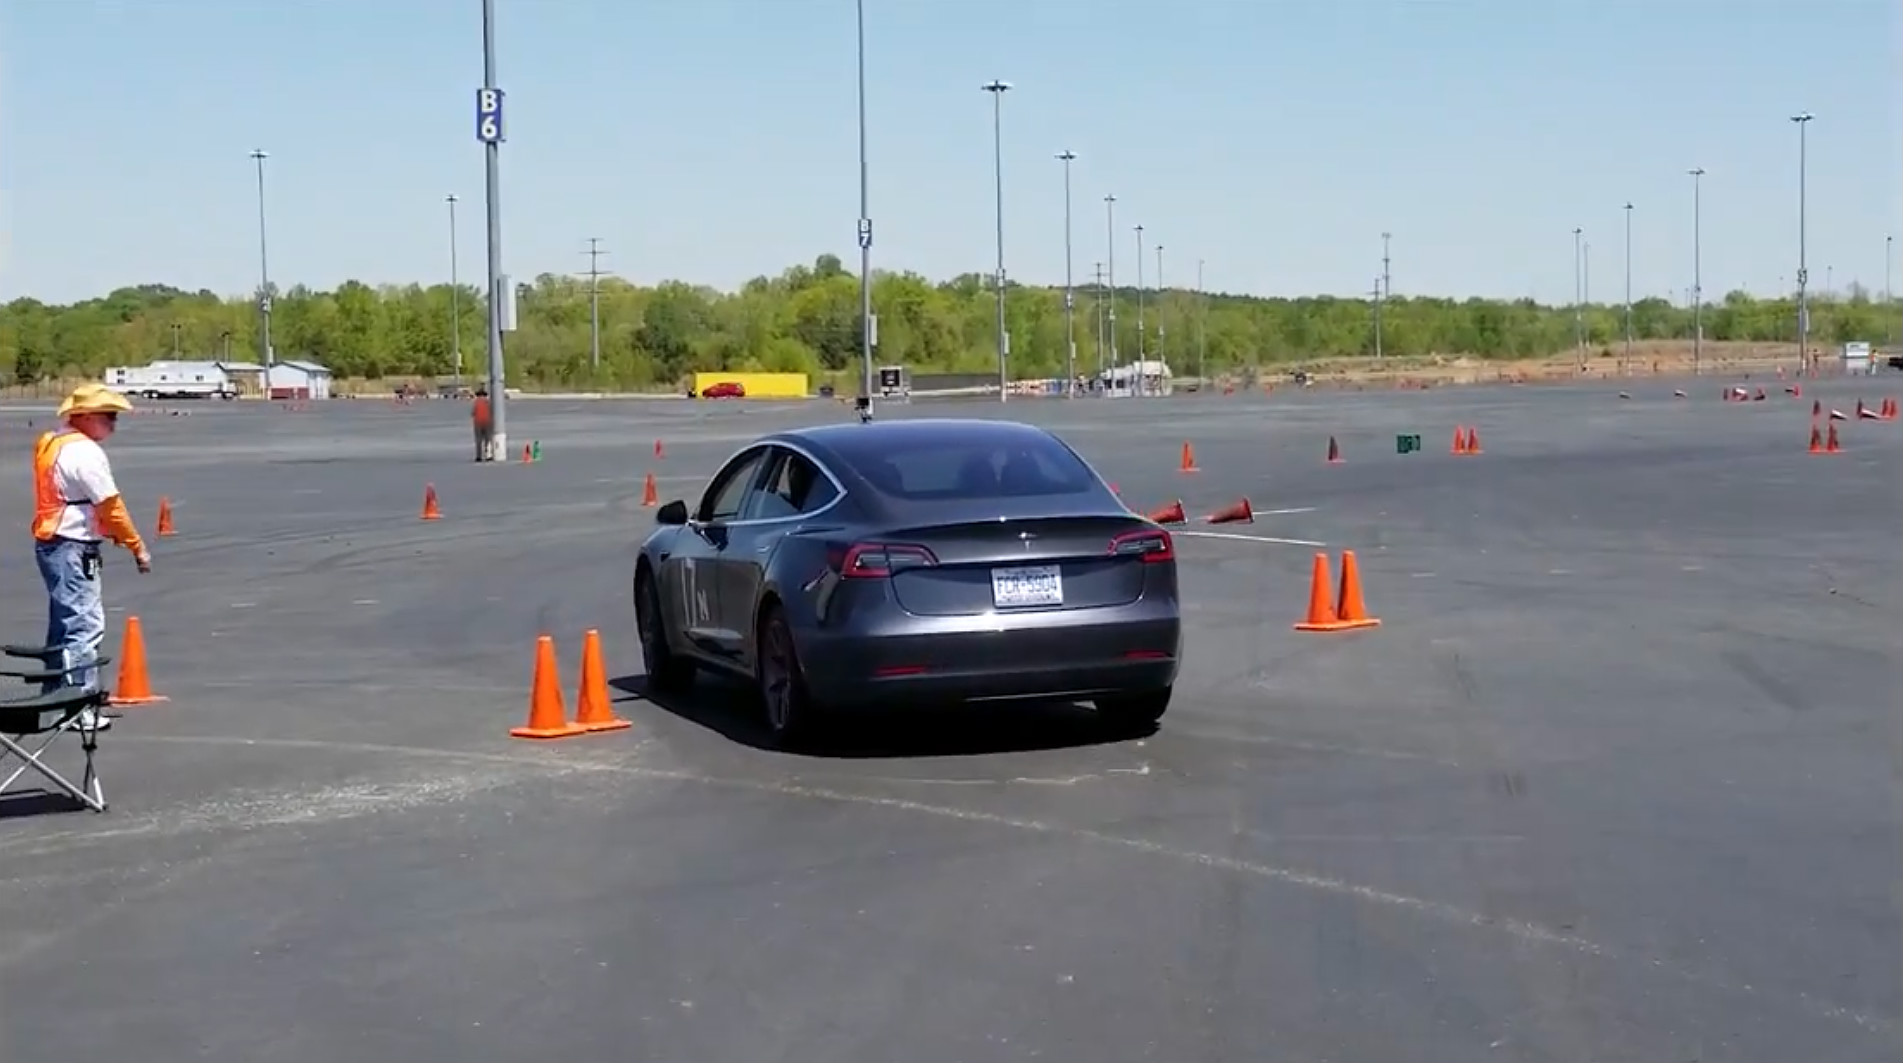 Model 3 autocross run 2 [Credit: Chestley Couch/YouTube]